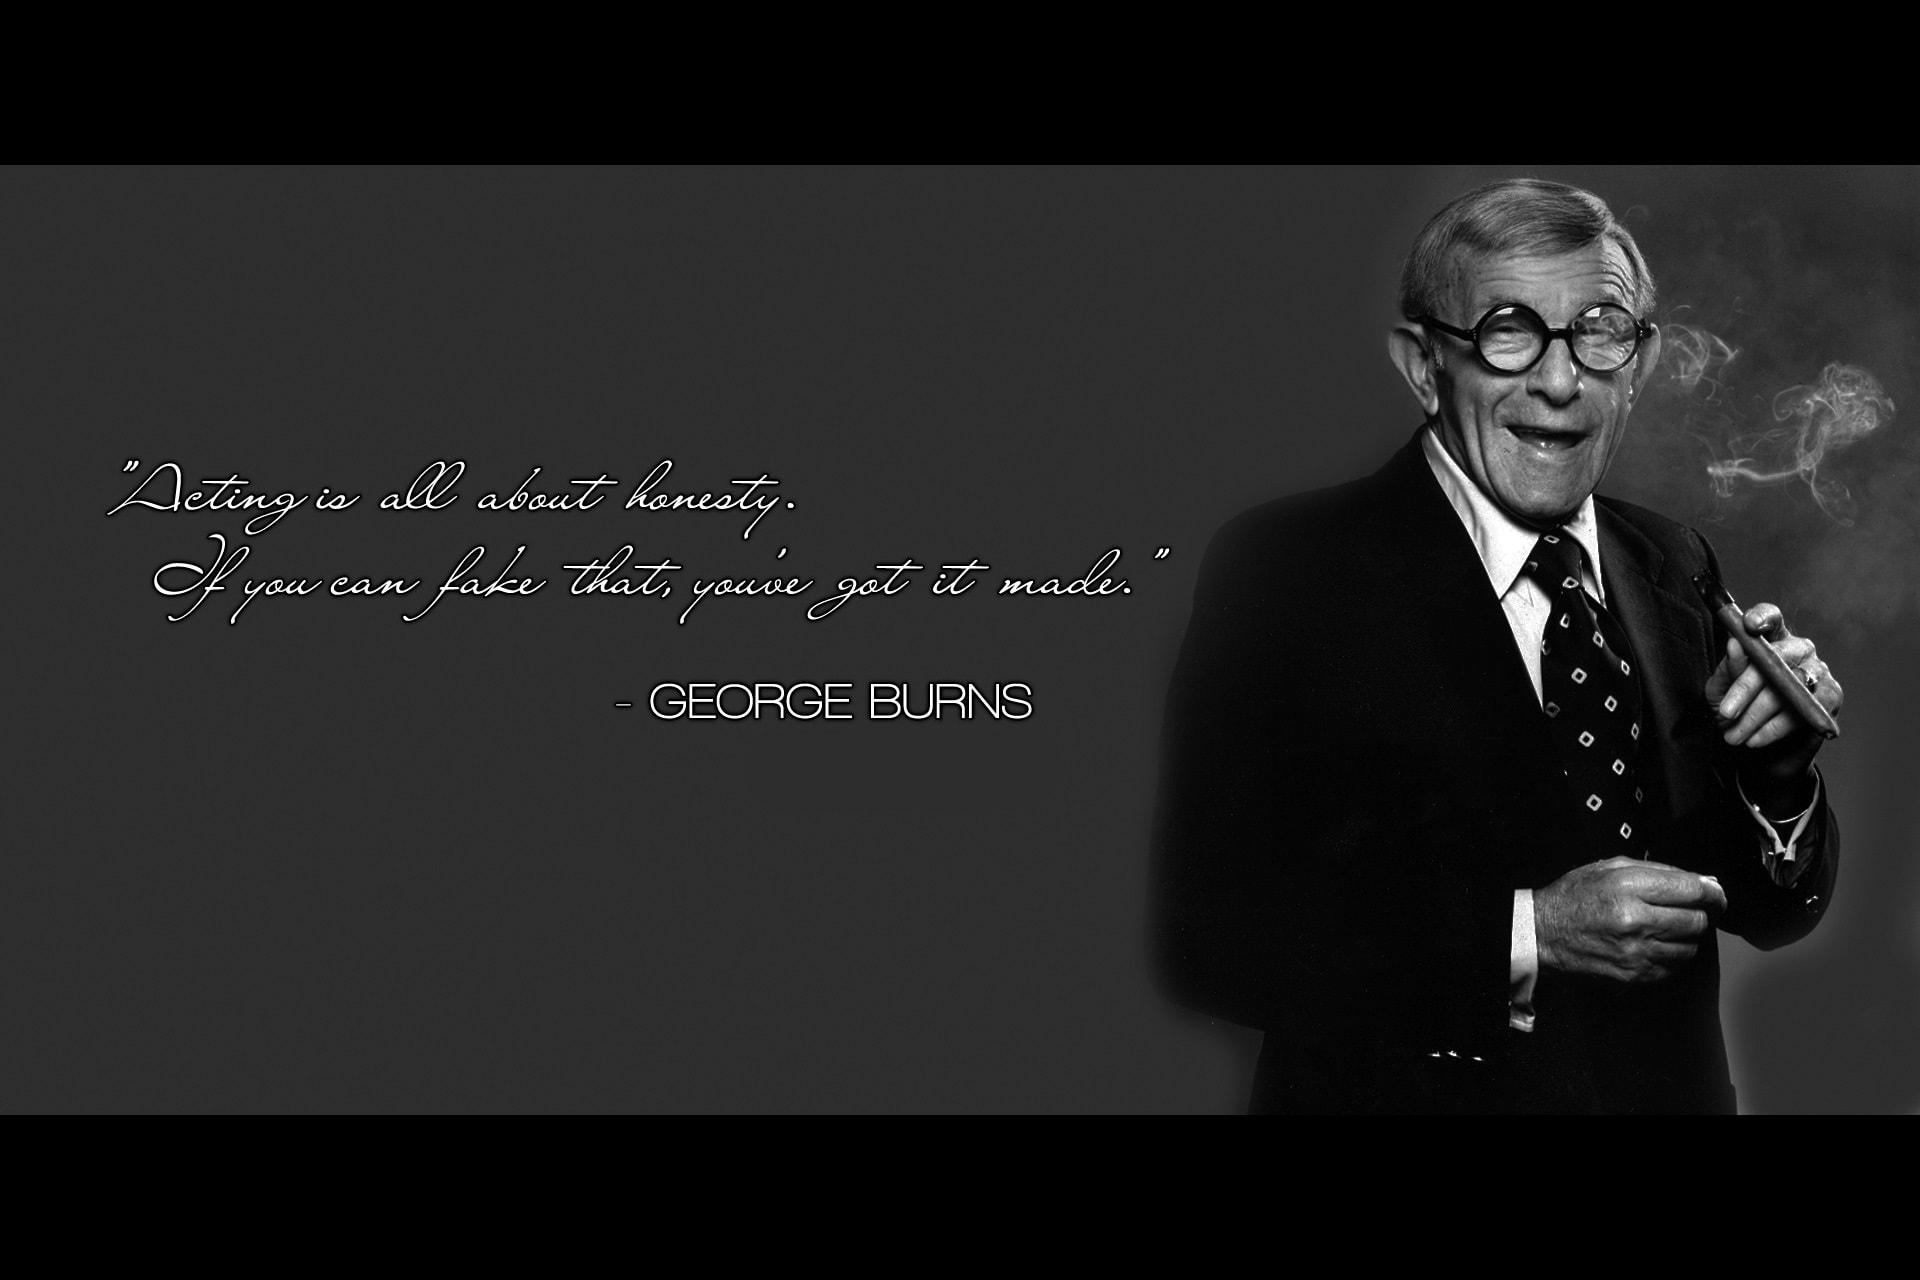 George Burns Full hd wallpapers